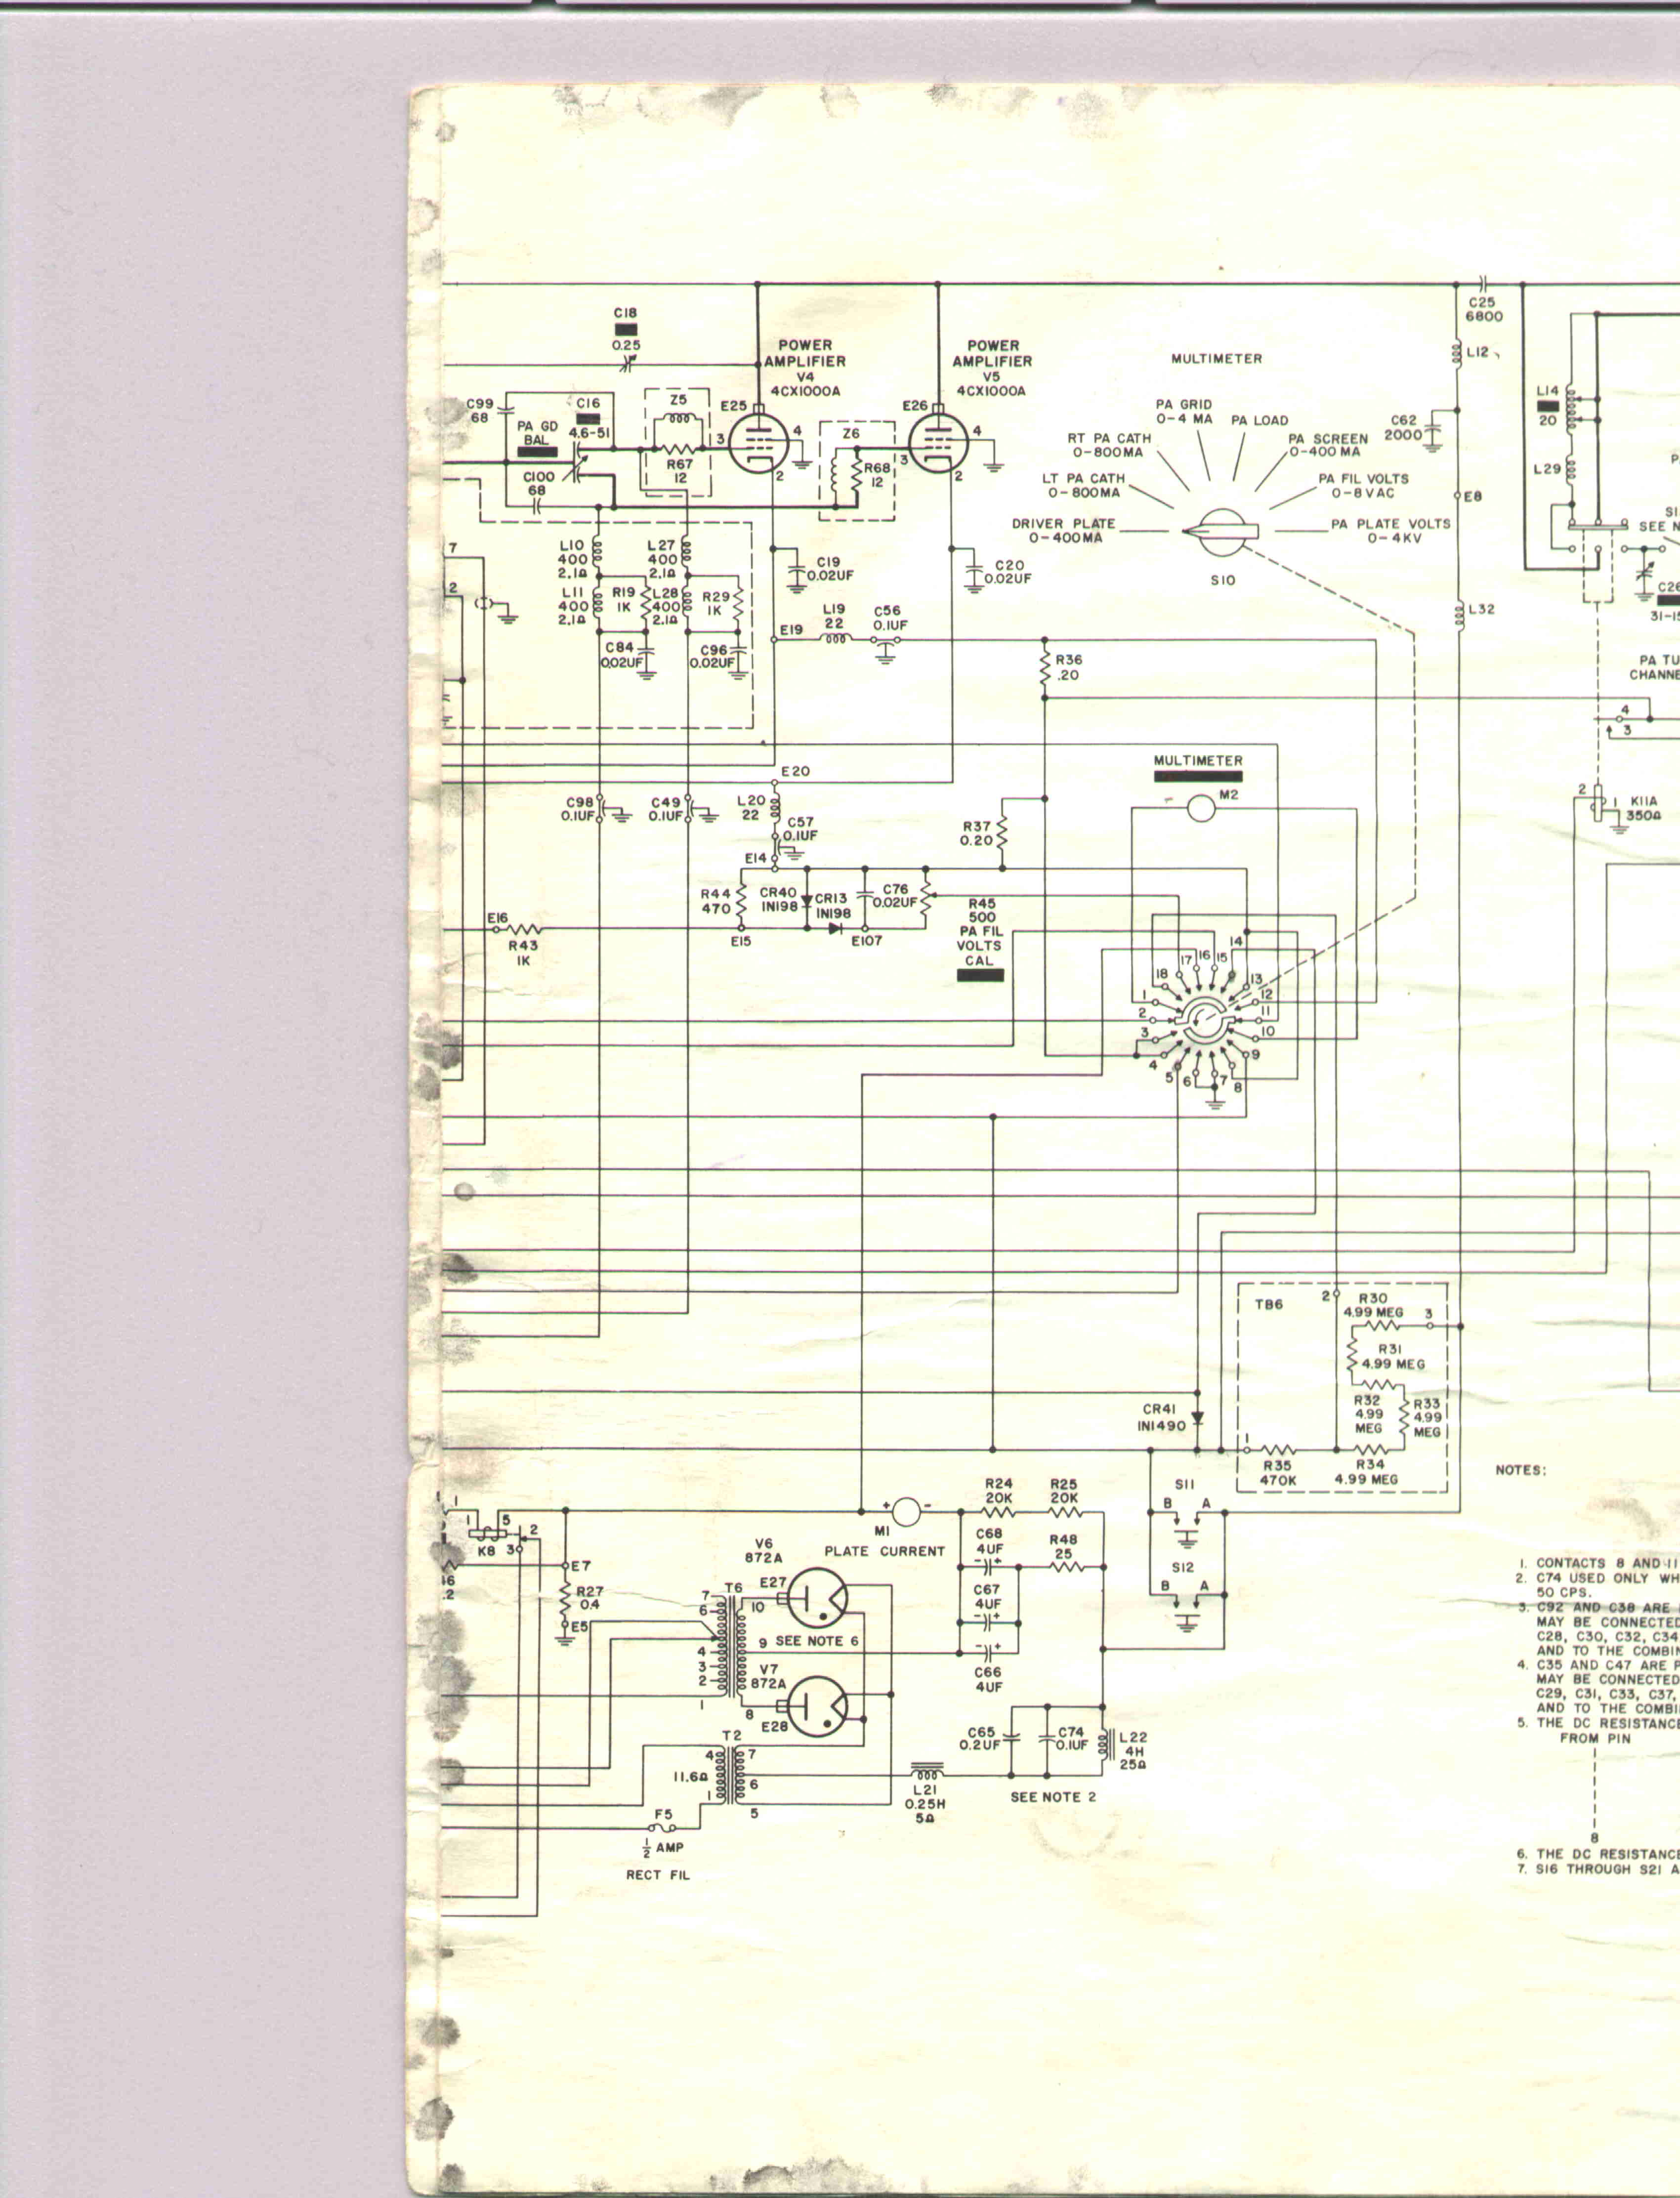 N2ckh Amateur Radio Software Download The Schematic In Pdf Format Click Here With Right Mouse Button To Full Size Part C As Jpeg File